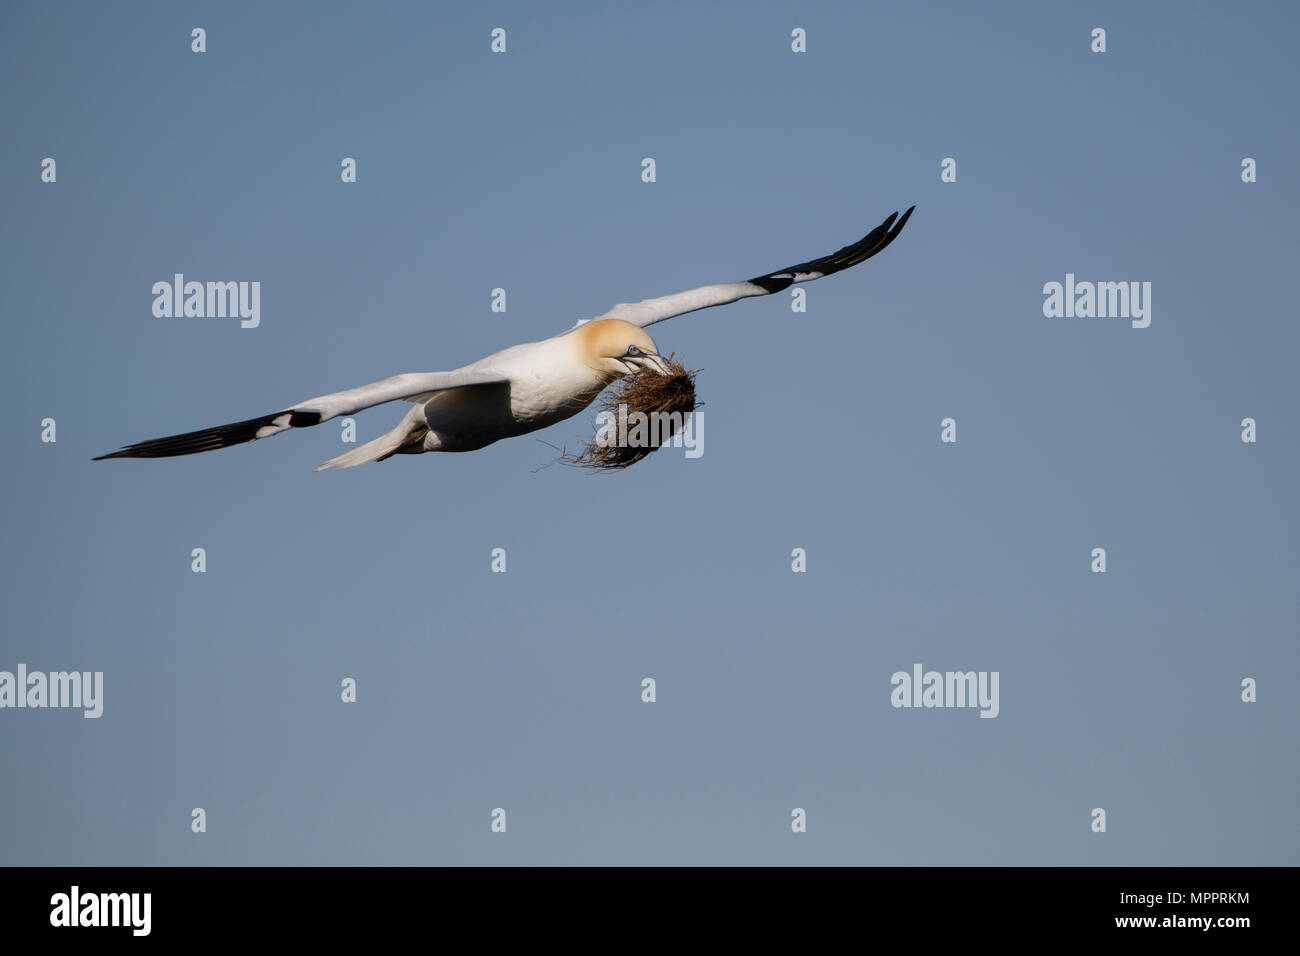 Scotland, flying Northern gannet with nesting material - Stock Image